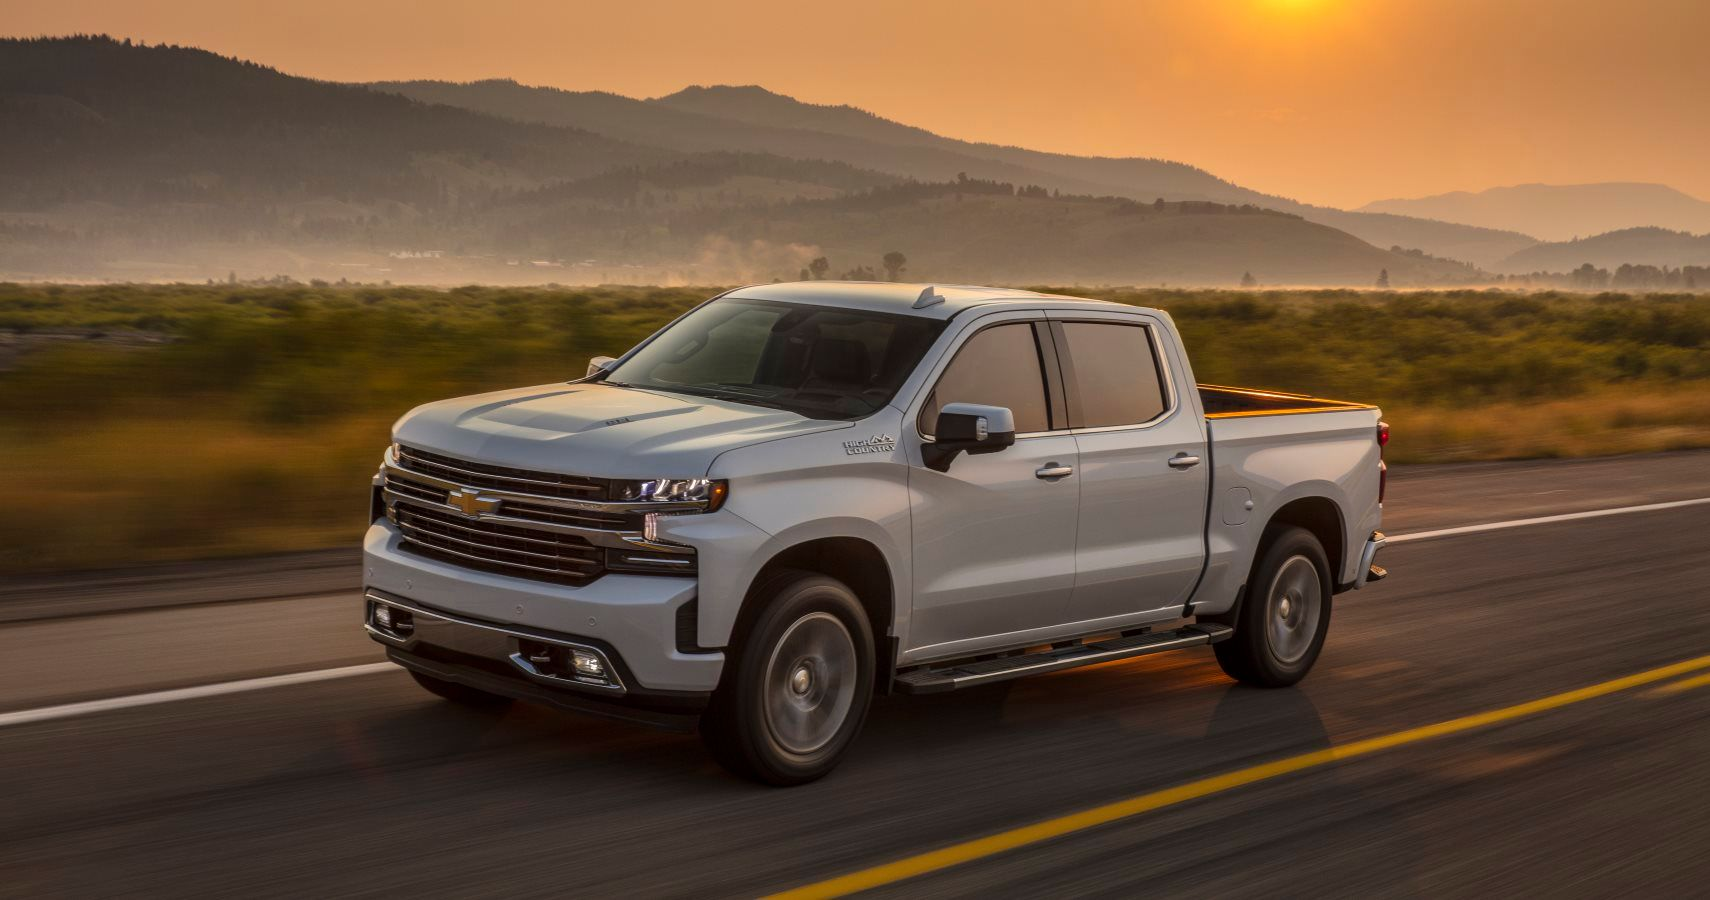 Would You Pay $100,000 For A Pickup? GM Is Considering Ultra-Luxury Trim Silverado